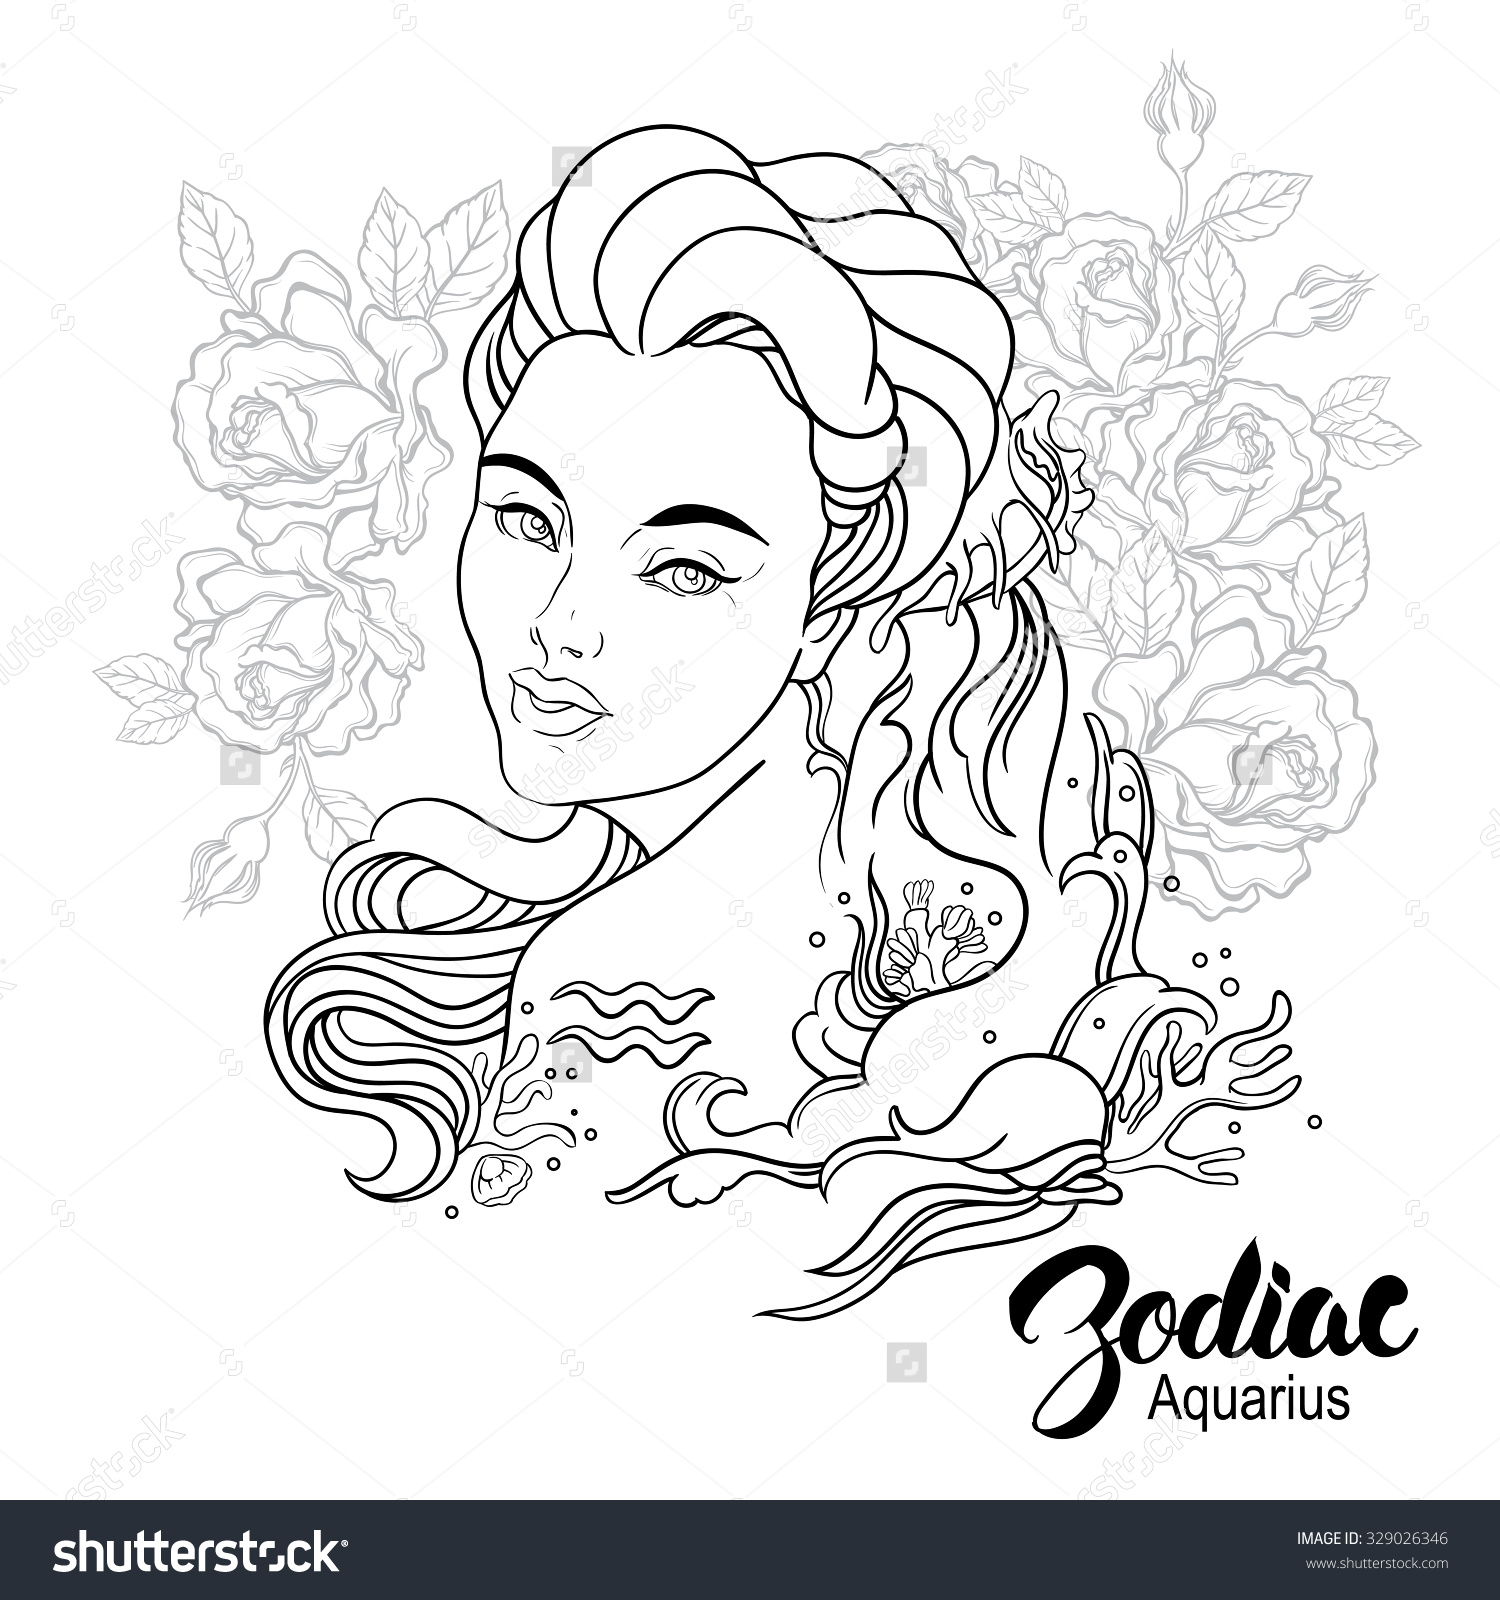 Aquarius (Astrology) coloring #2, Download drawings